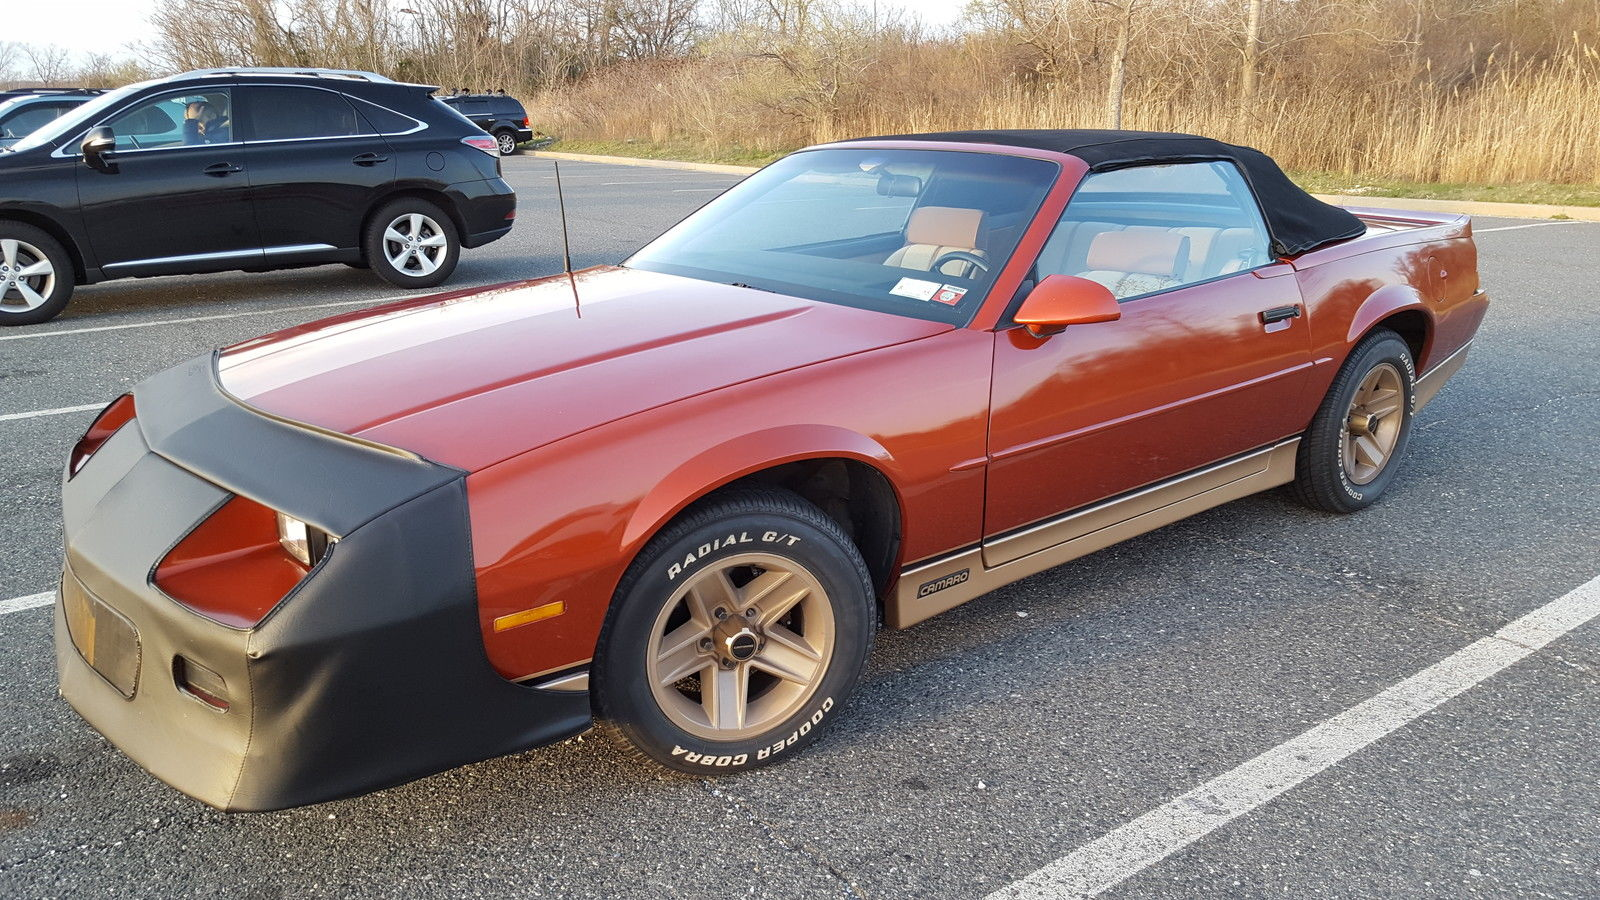 1988 Chevrolet Camaro Convertible For Sale